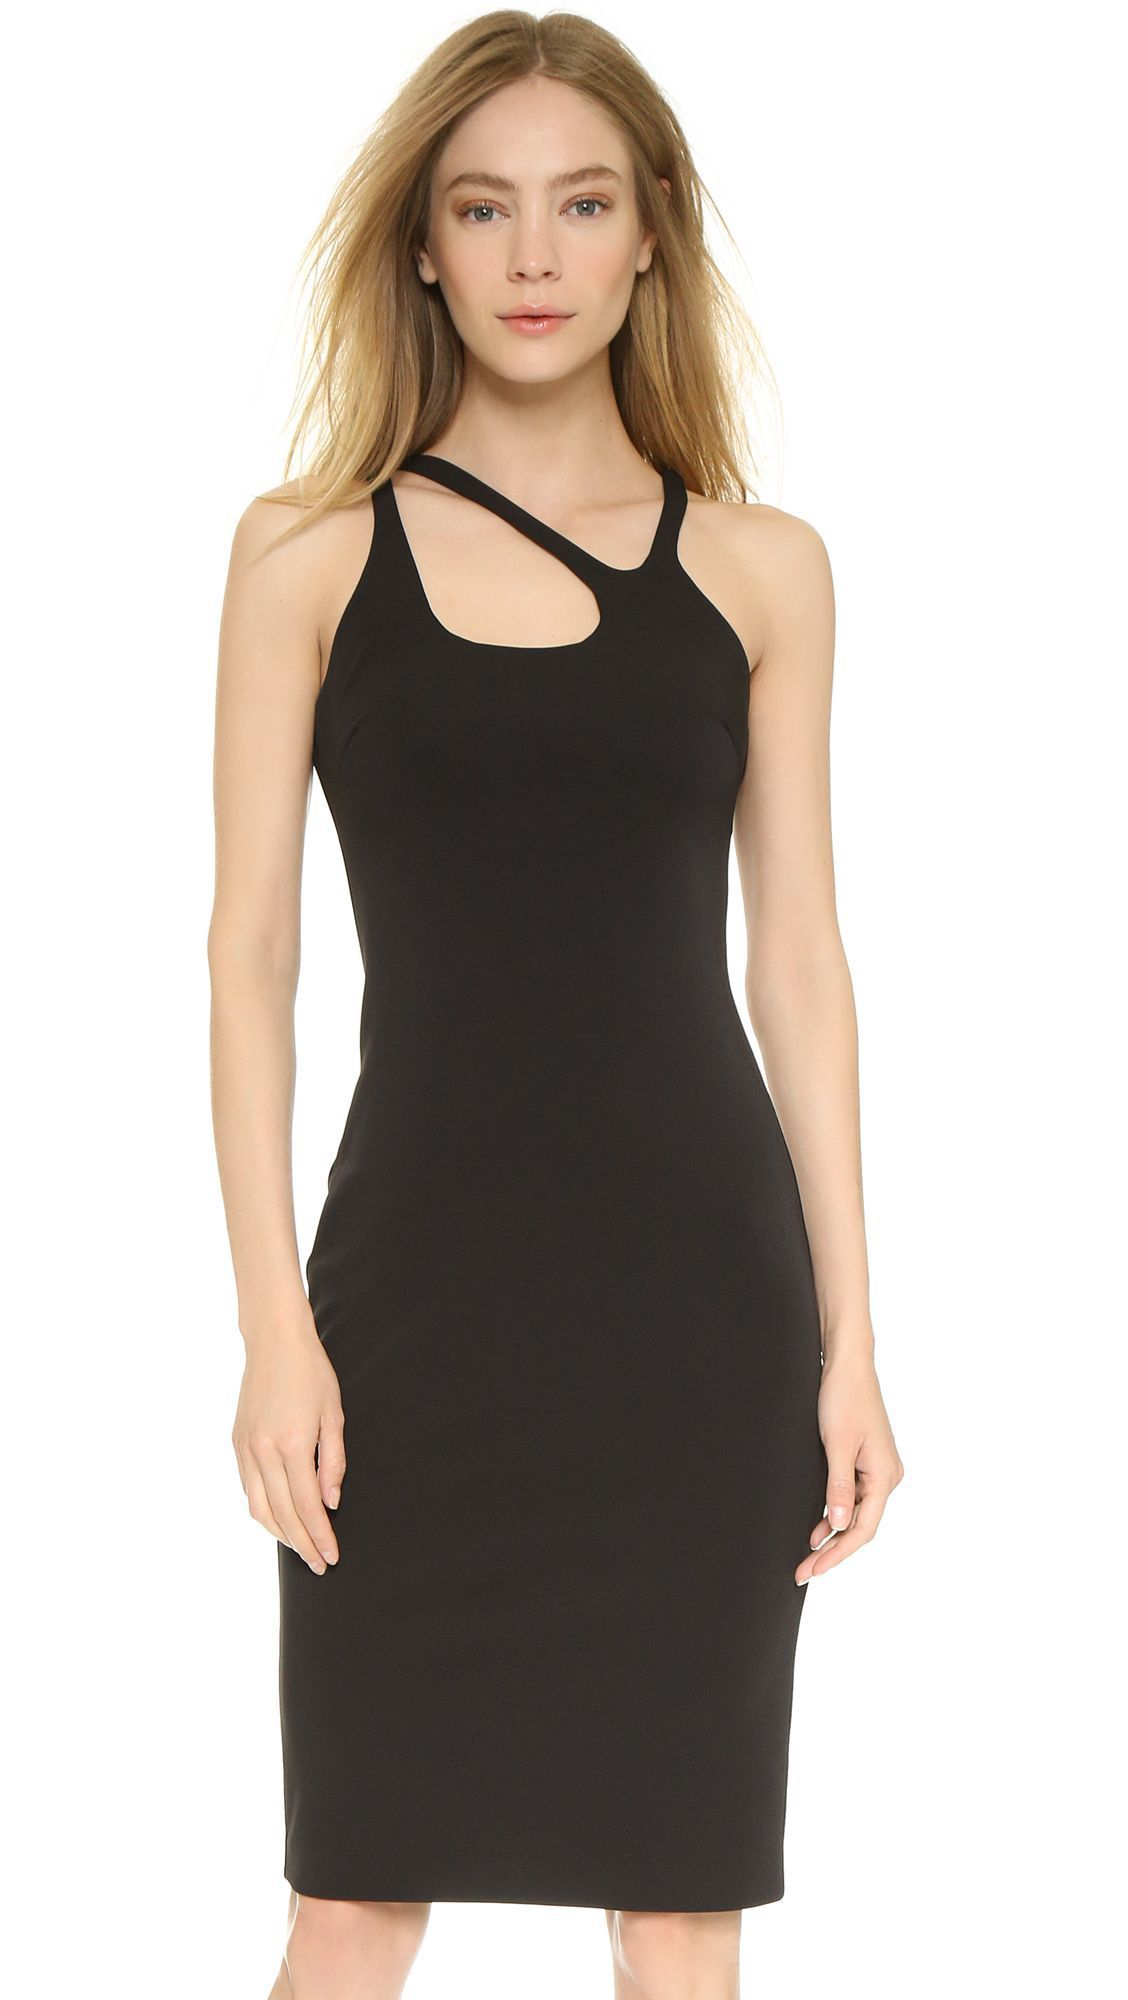 Halston Heritage Fitted Dress with Cutout Neckline Size M